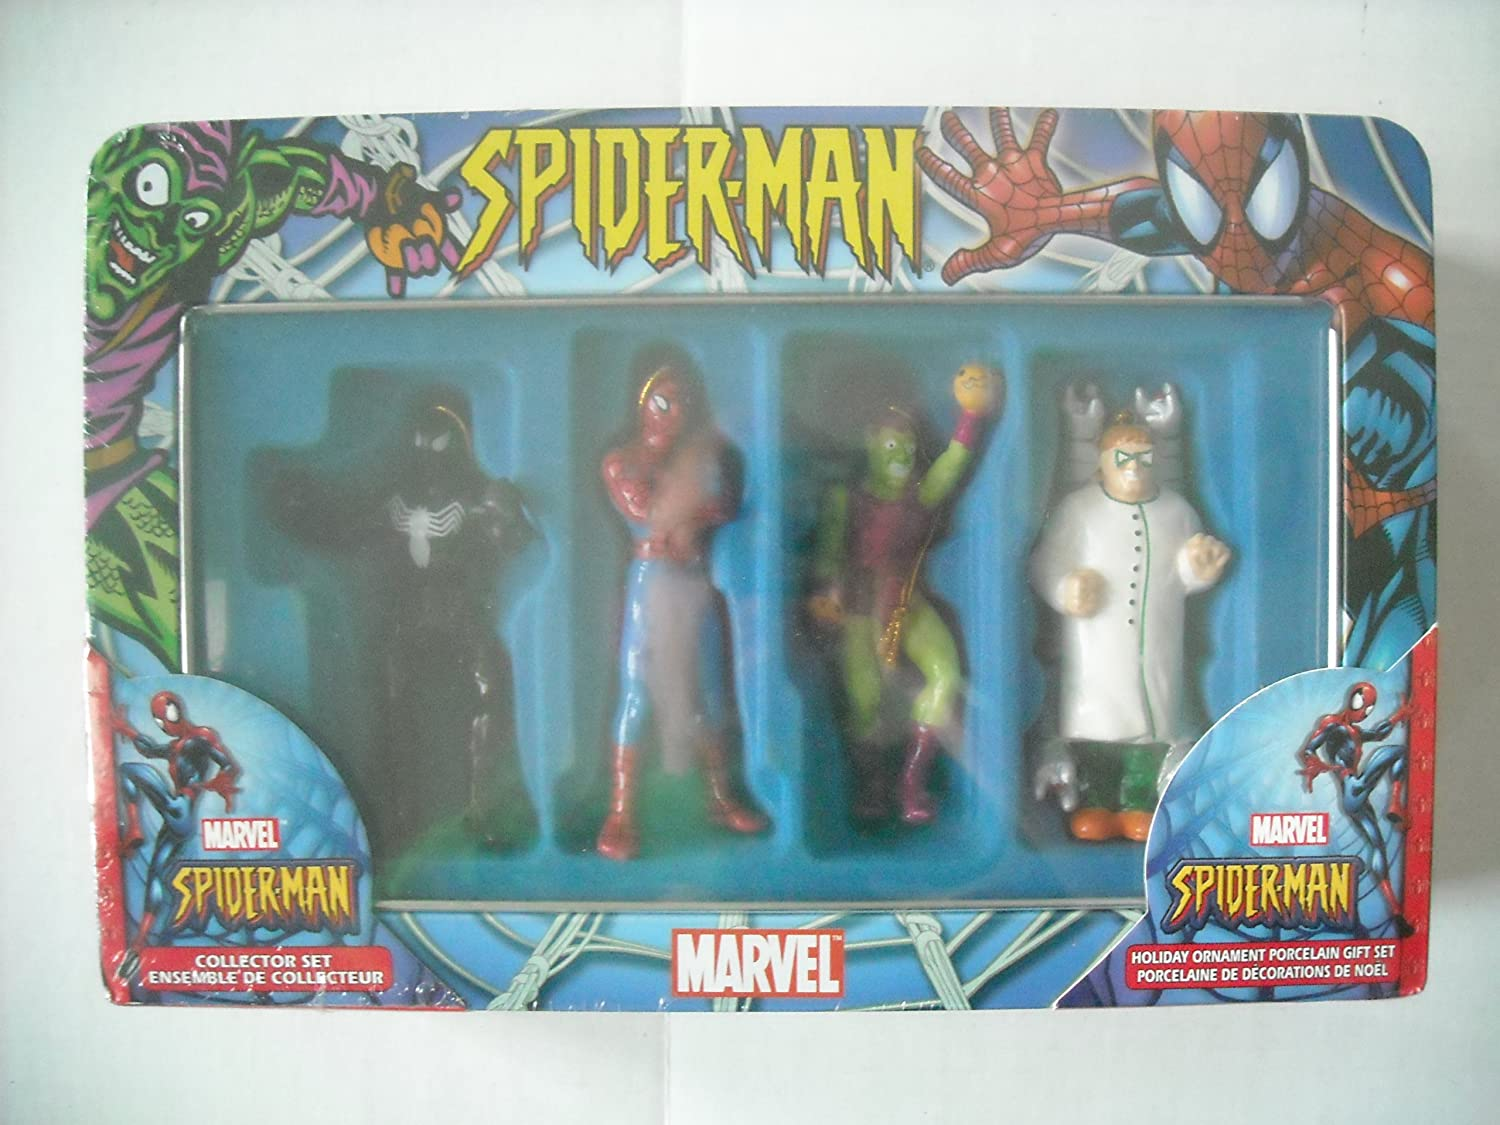 6pc NEW Custom MARVEL Disney Ultimate Spiderman Ornament Set FANTASTIC